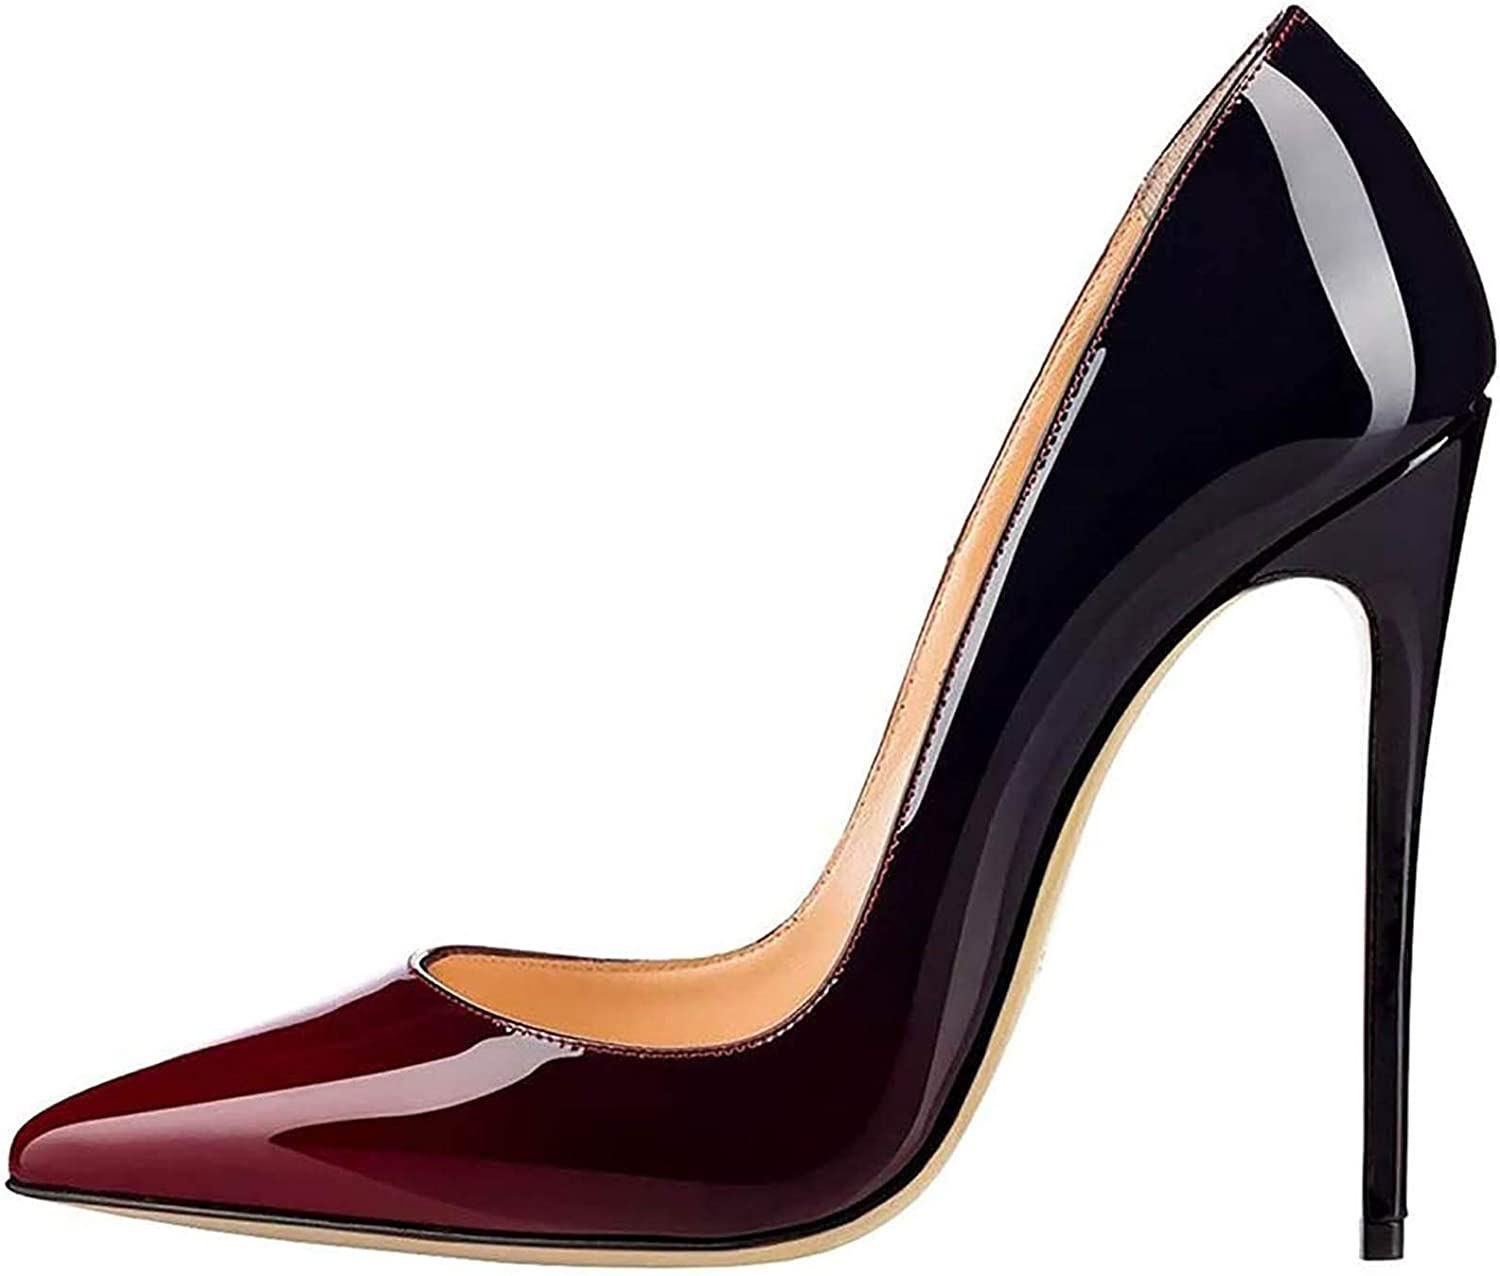 OFFicial shop WDZJM High Heels Ladies Pointed C Patent Color Max 75% OFF Leather Gradient